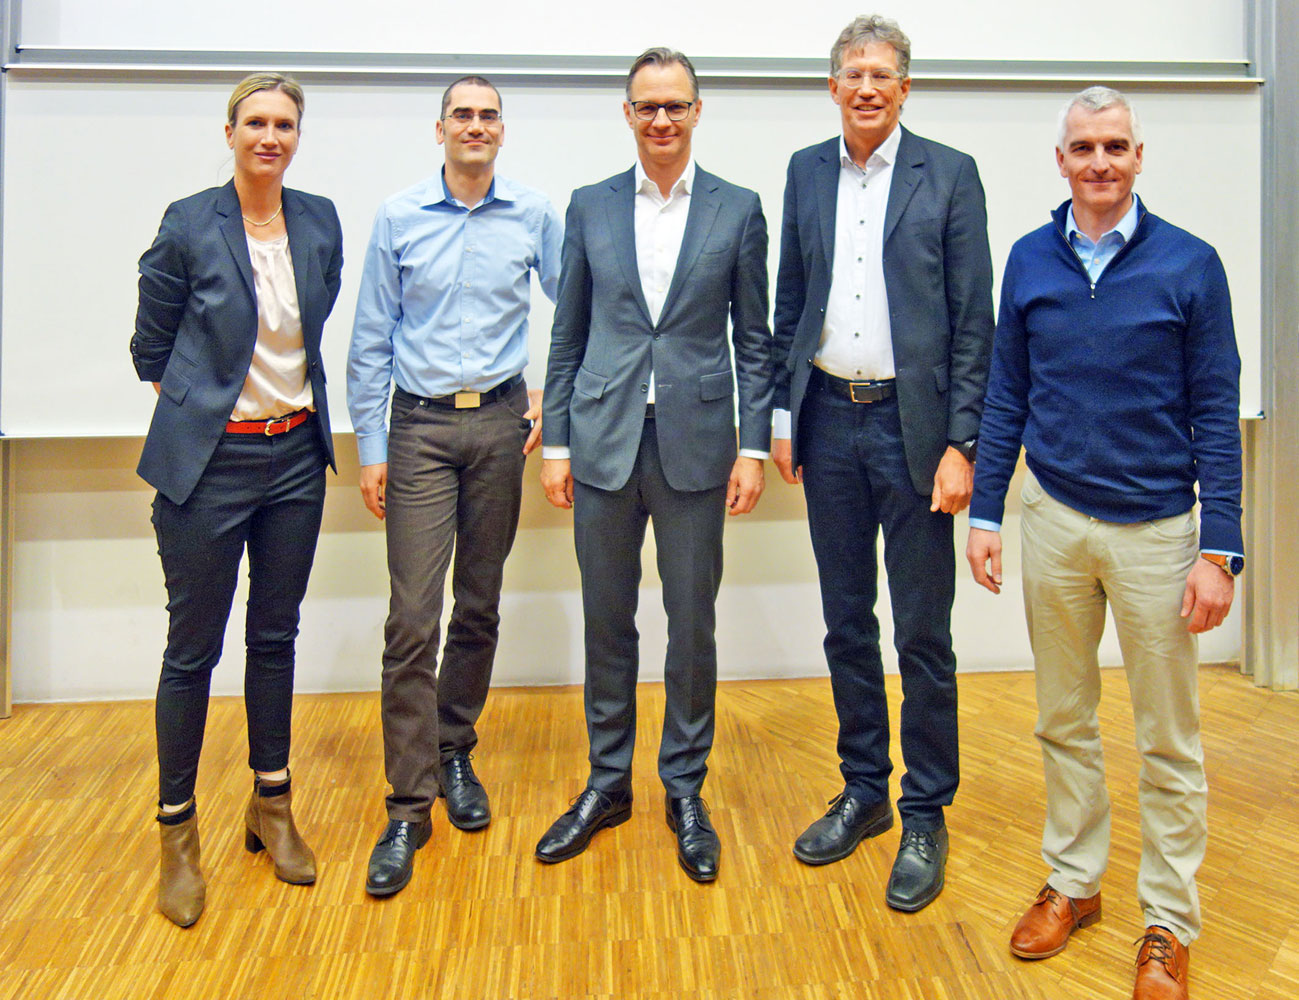 Von links: Professorin Dr. Stephanie Baumgarten, Dr. Manfred Groh (BayWa Konzern Strategie), Matthias Taft (Vorstand BayWa Konzern), Professor Dr. Notger Carl und Professor Dr. Gerhard Hube (Foto FHWS)